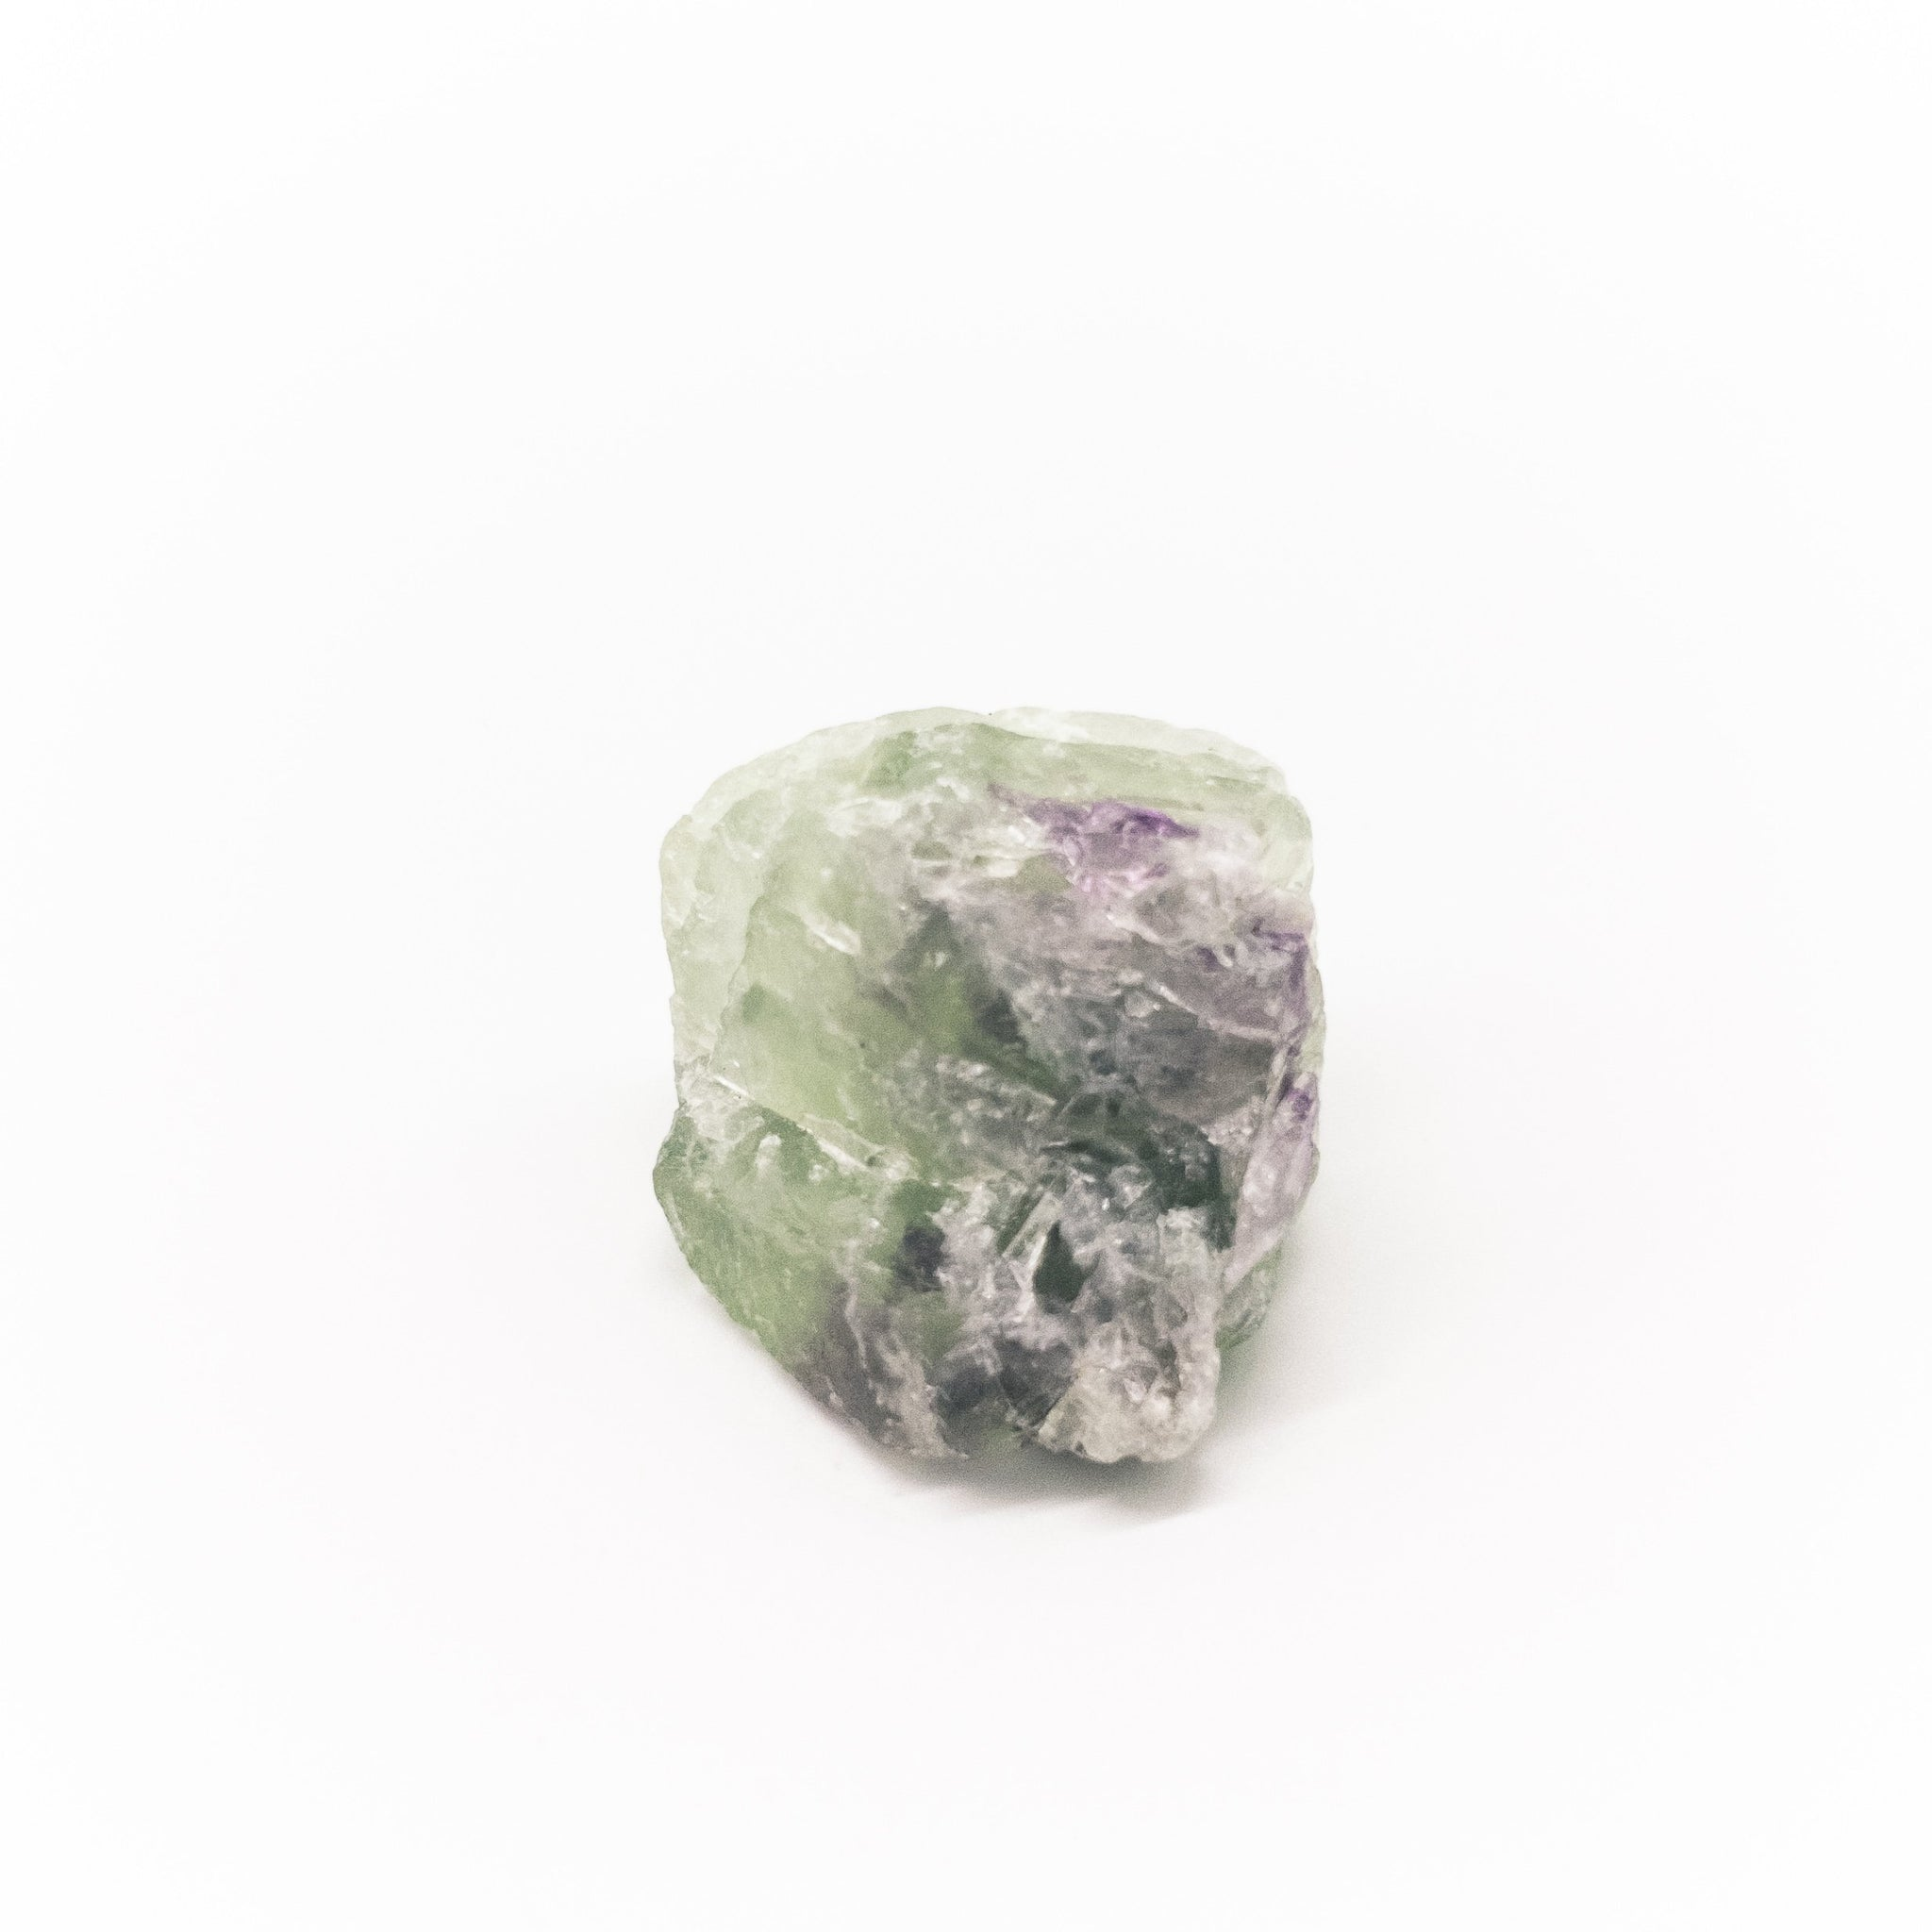 Fluorite Rough Stone - WHYTE QUARTZ